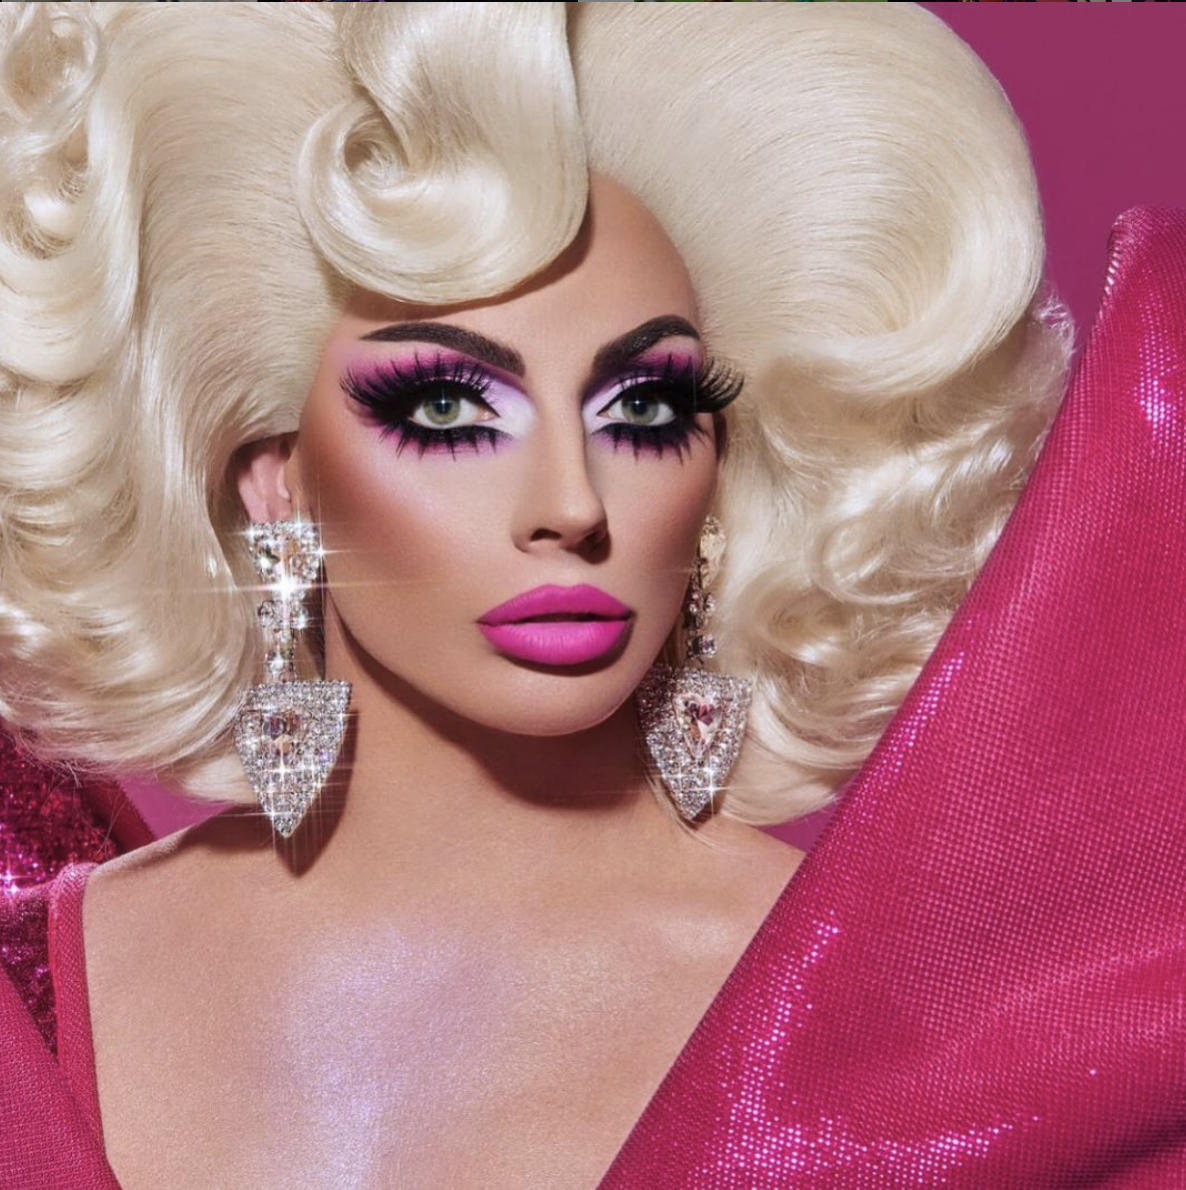 The 40-year old son of father (?) and mother(?) Alyssa Edwards in 2020 photo. Alyssa Edwards earned a  million dollar salary - leaving the net worth at  million in 2020